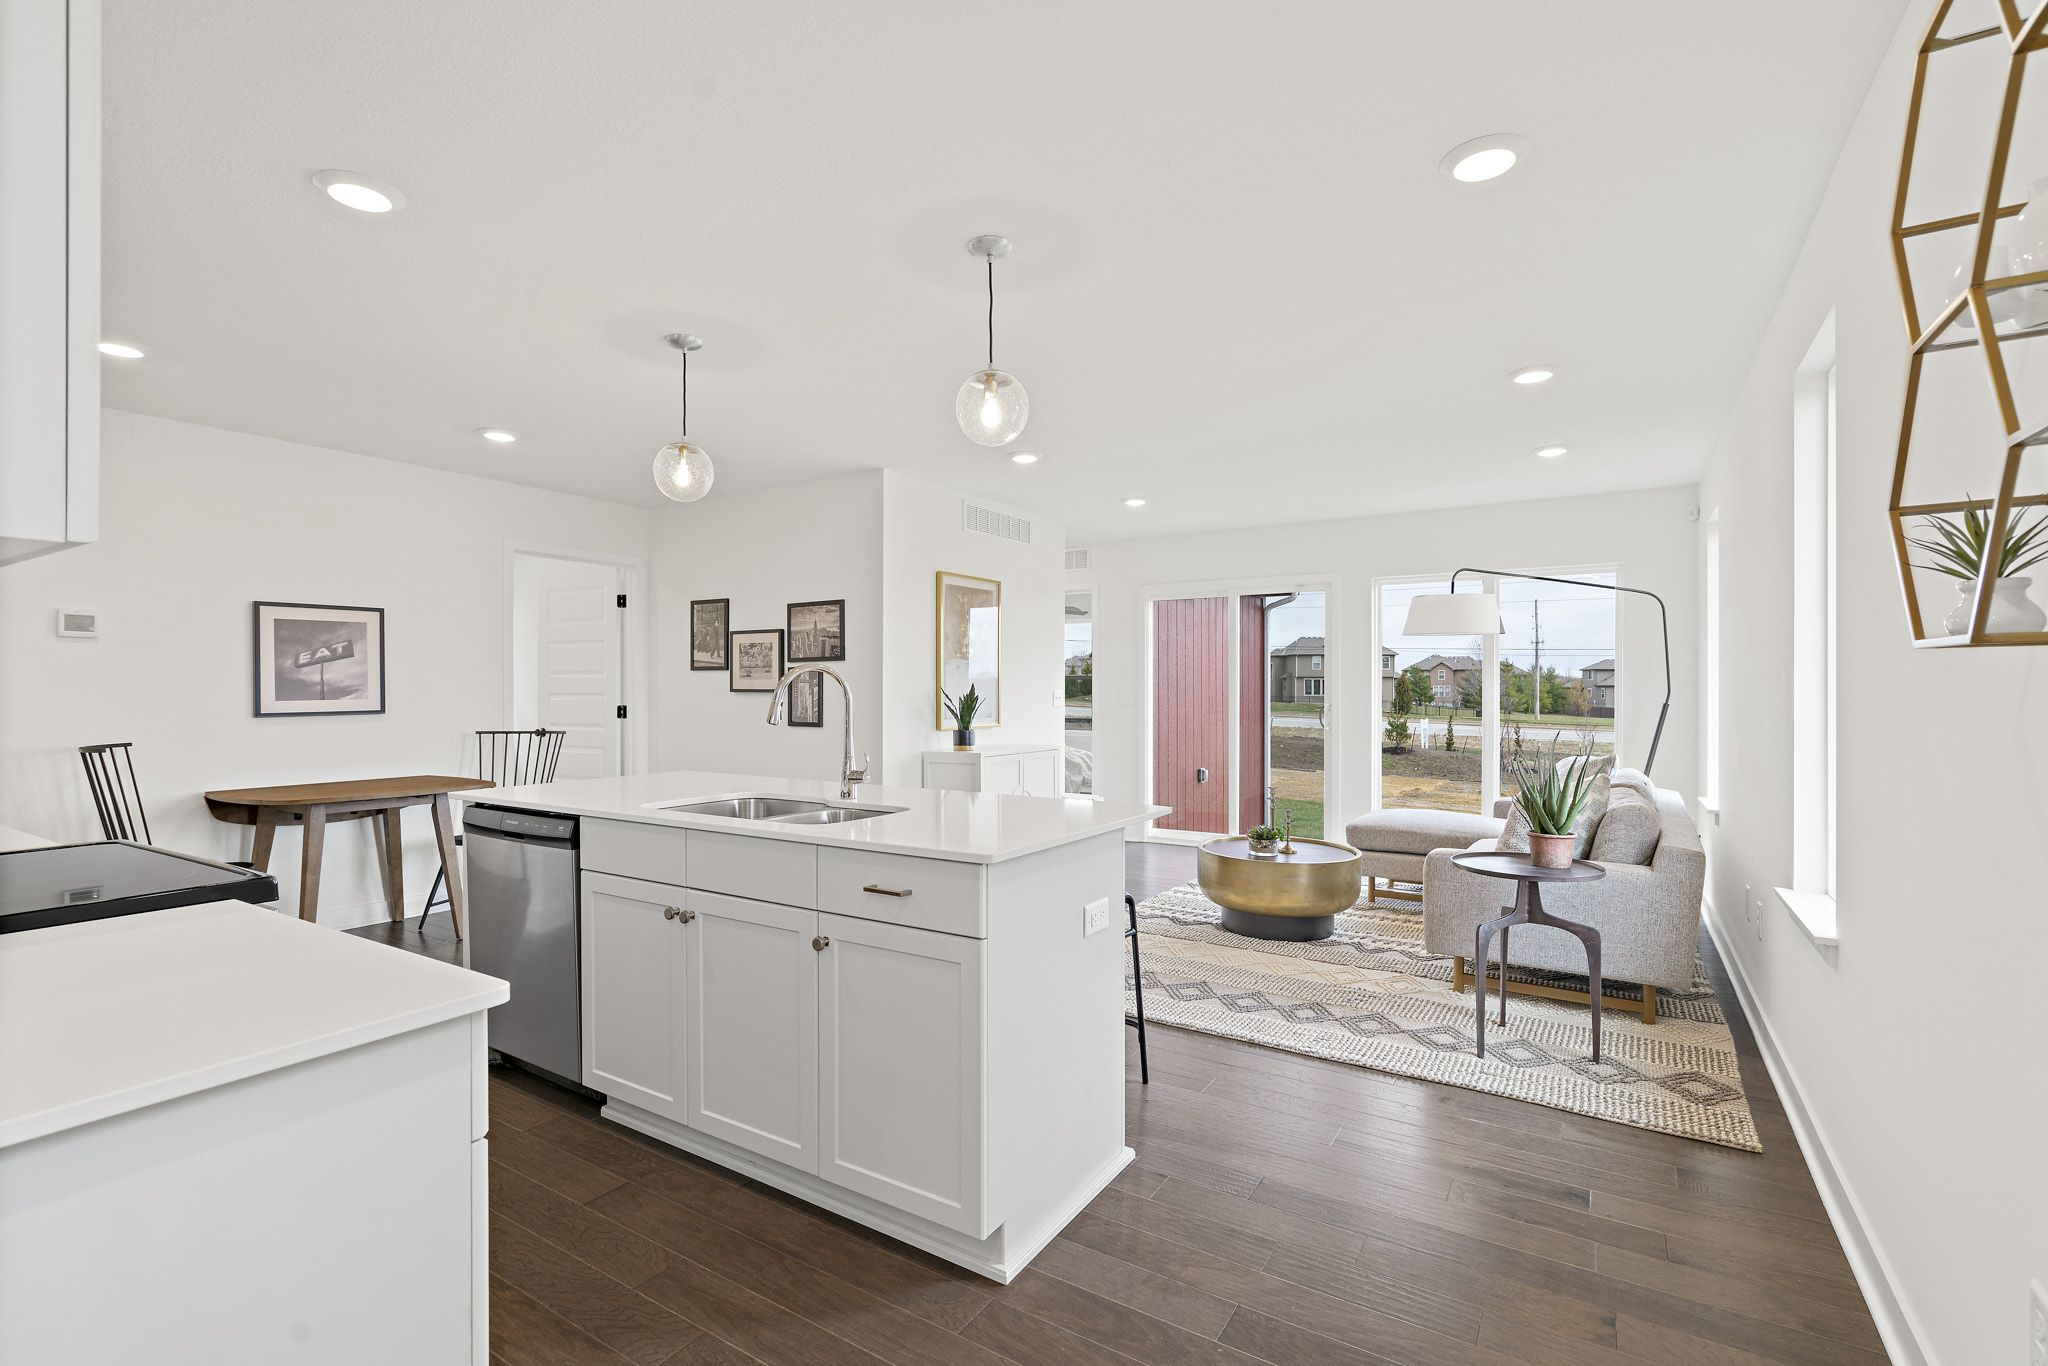 Kitchen featured in the sapphire - contemporary By clover & hive in Kansas City, MO